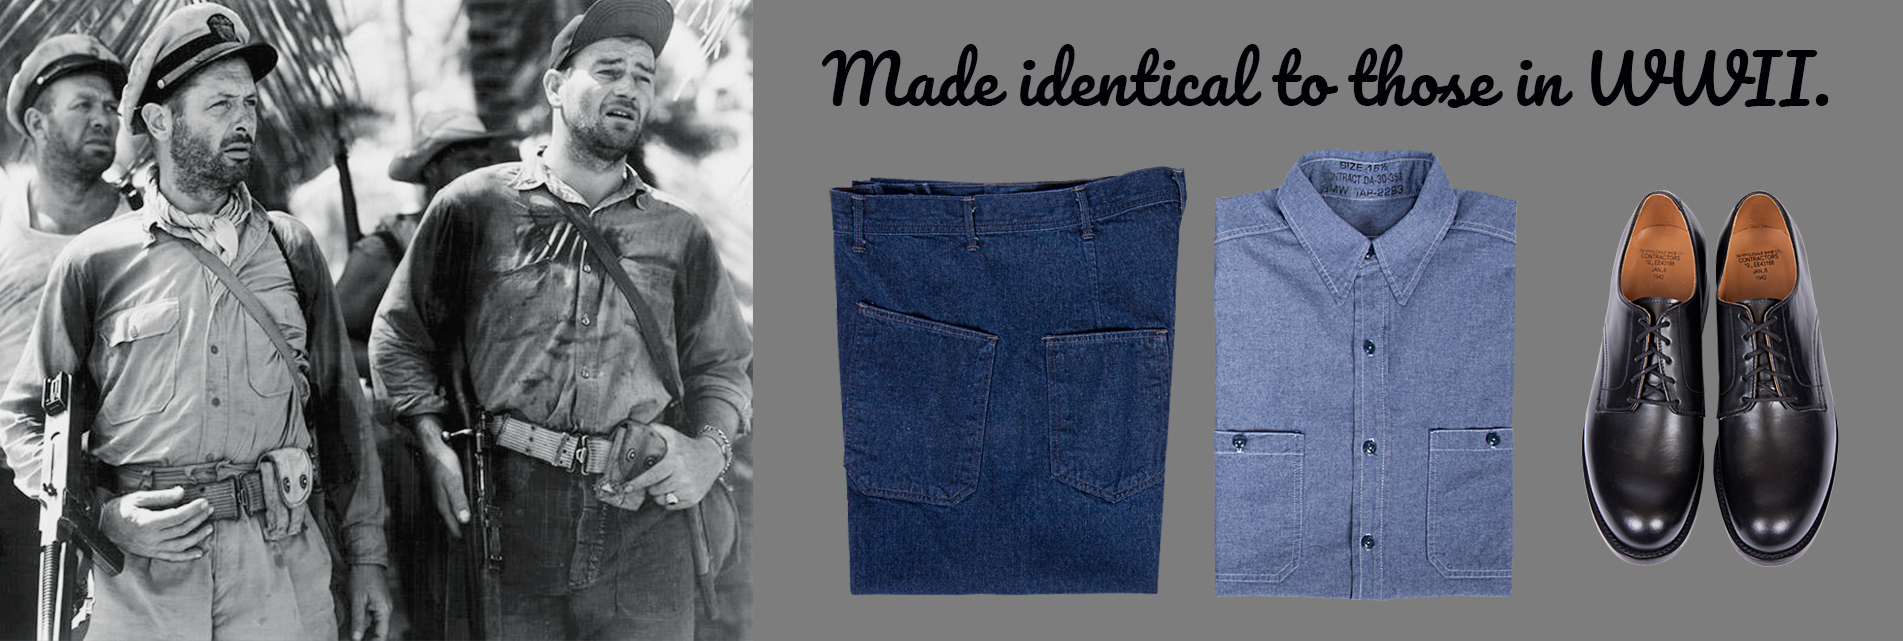 WWII U.S. Navy Dungarees and Oxfords.